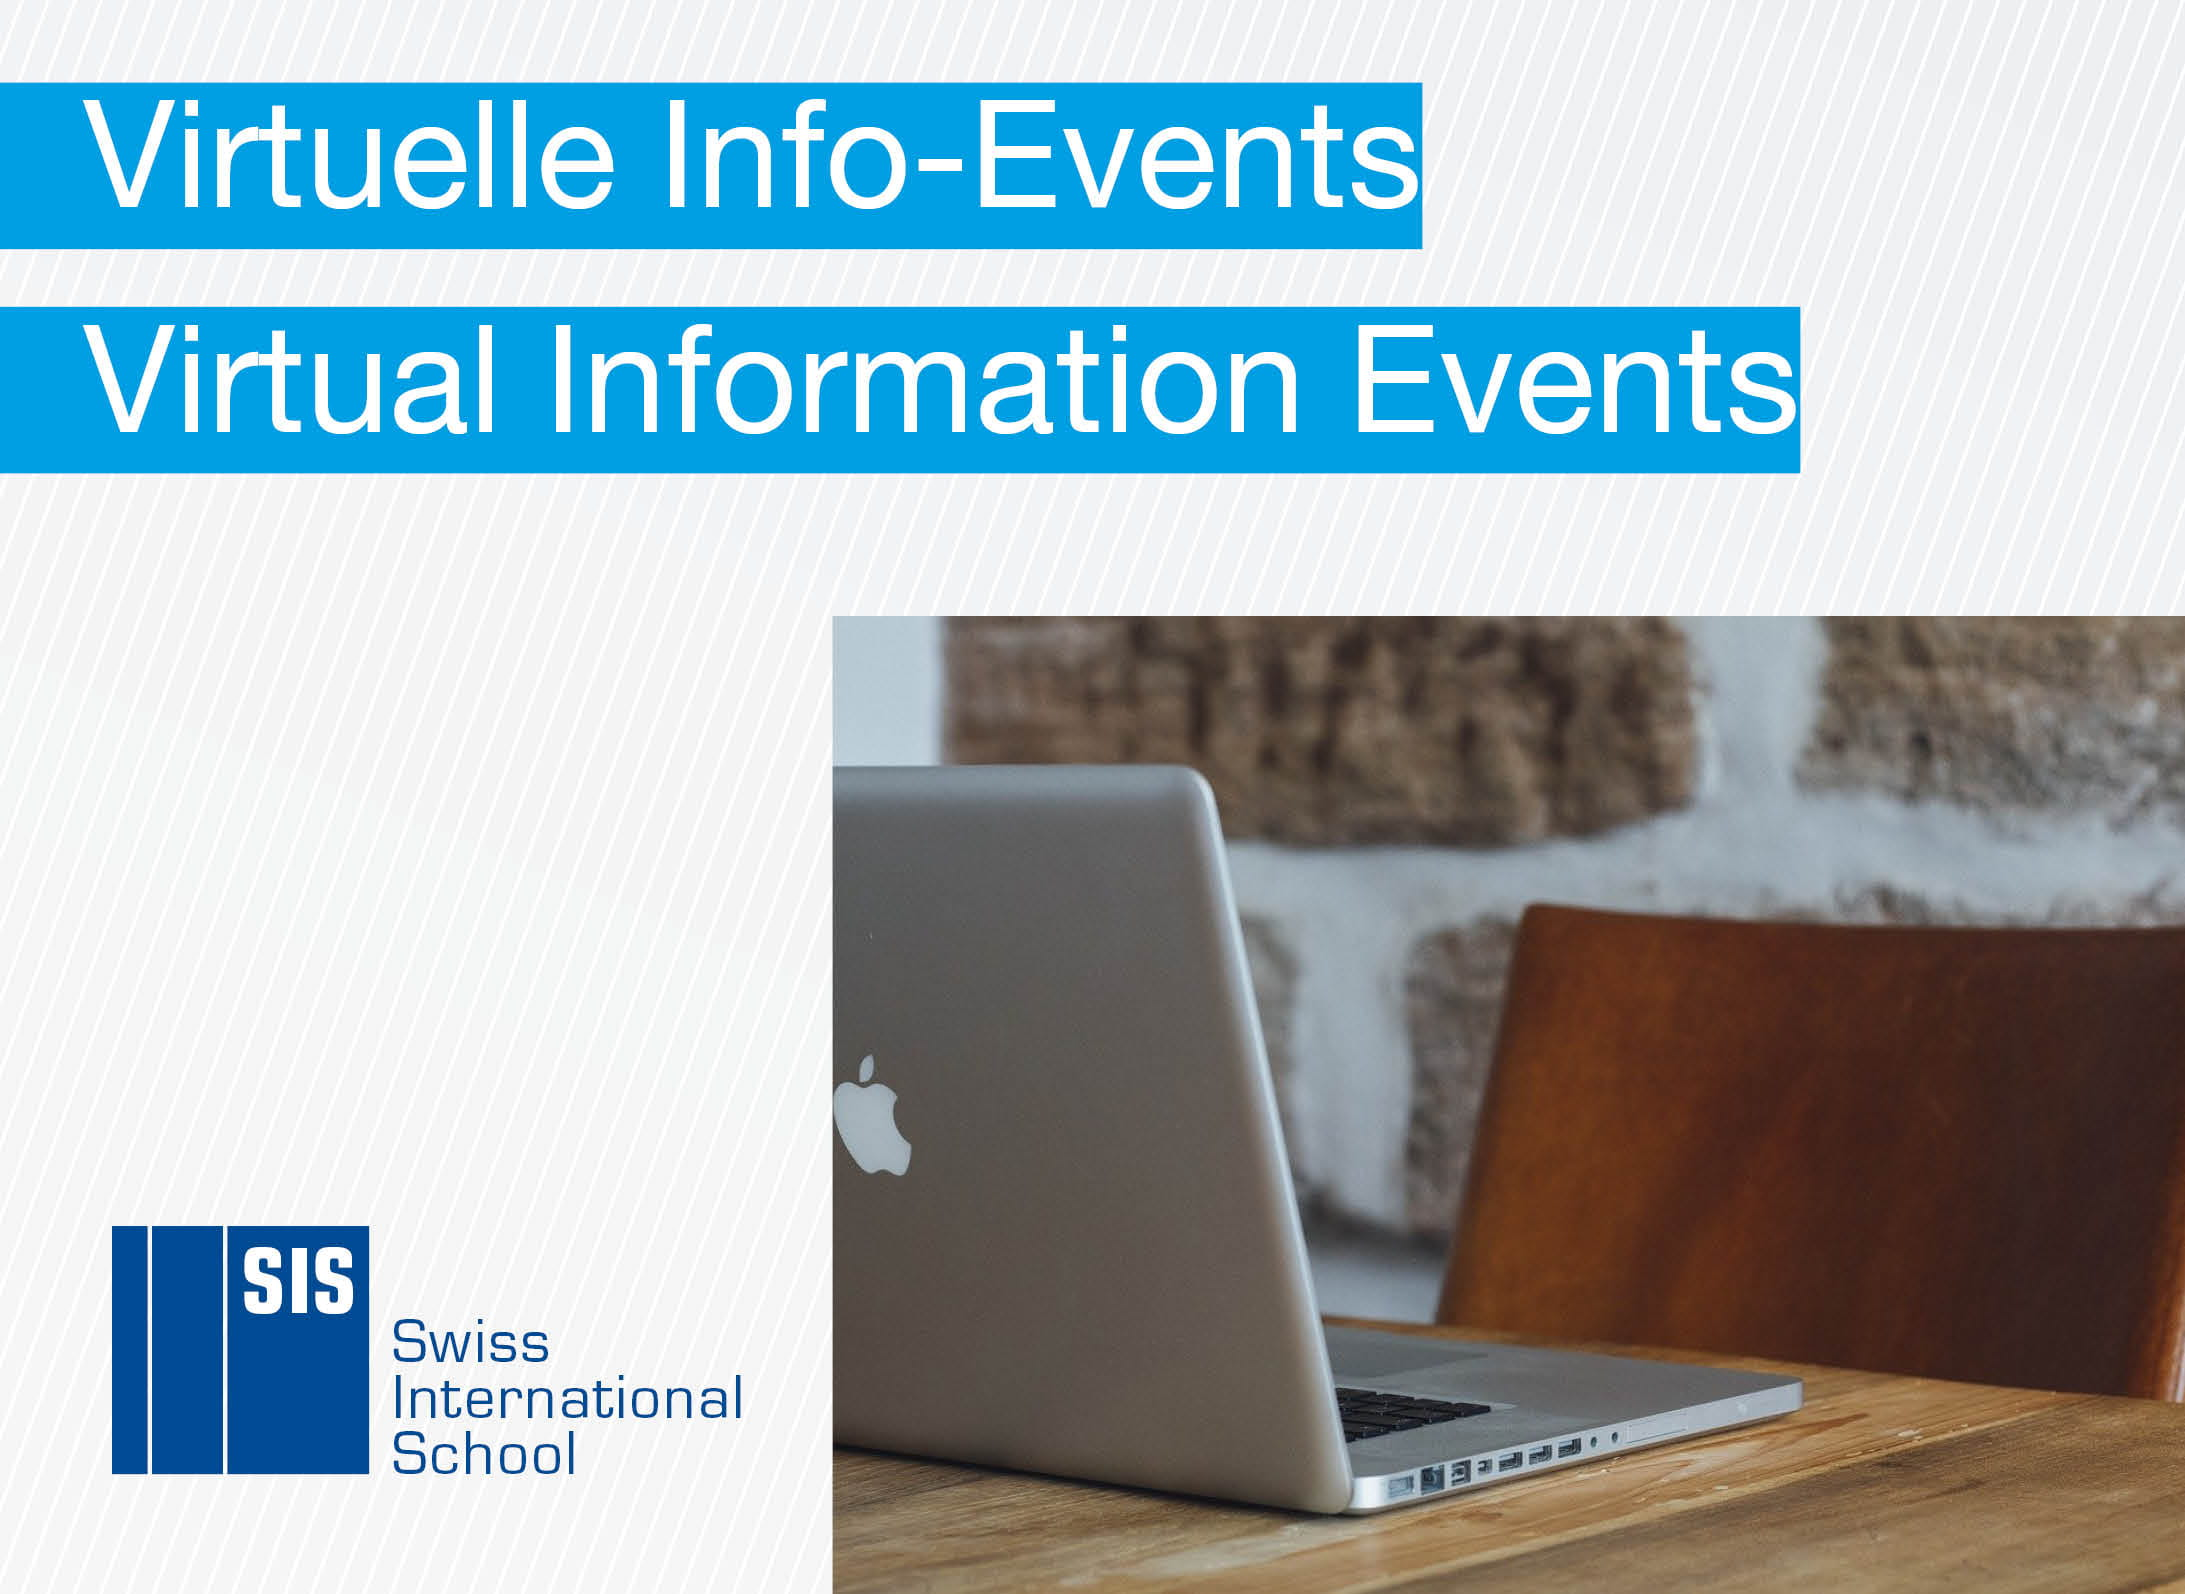 Virtual Information Events at SIS Schools